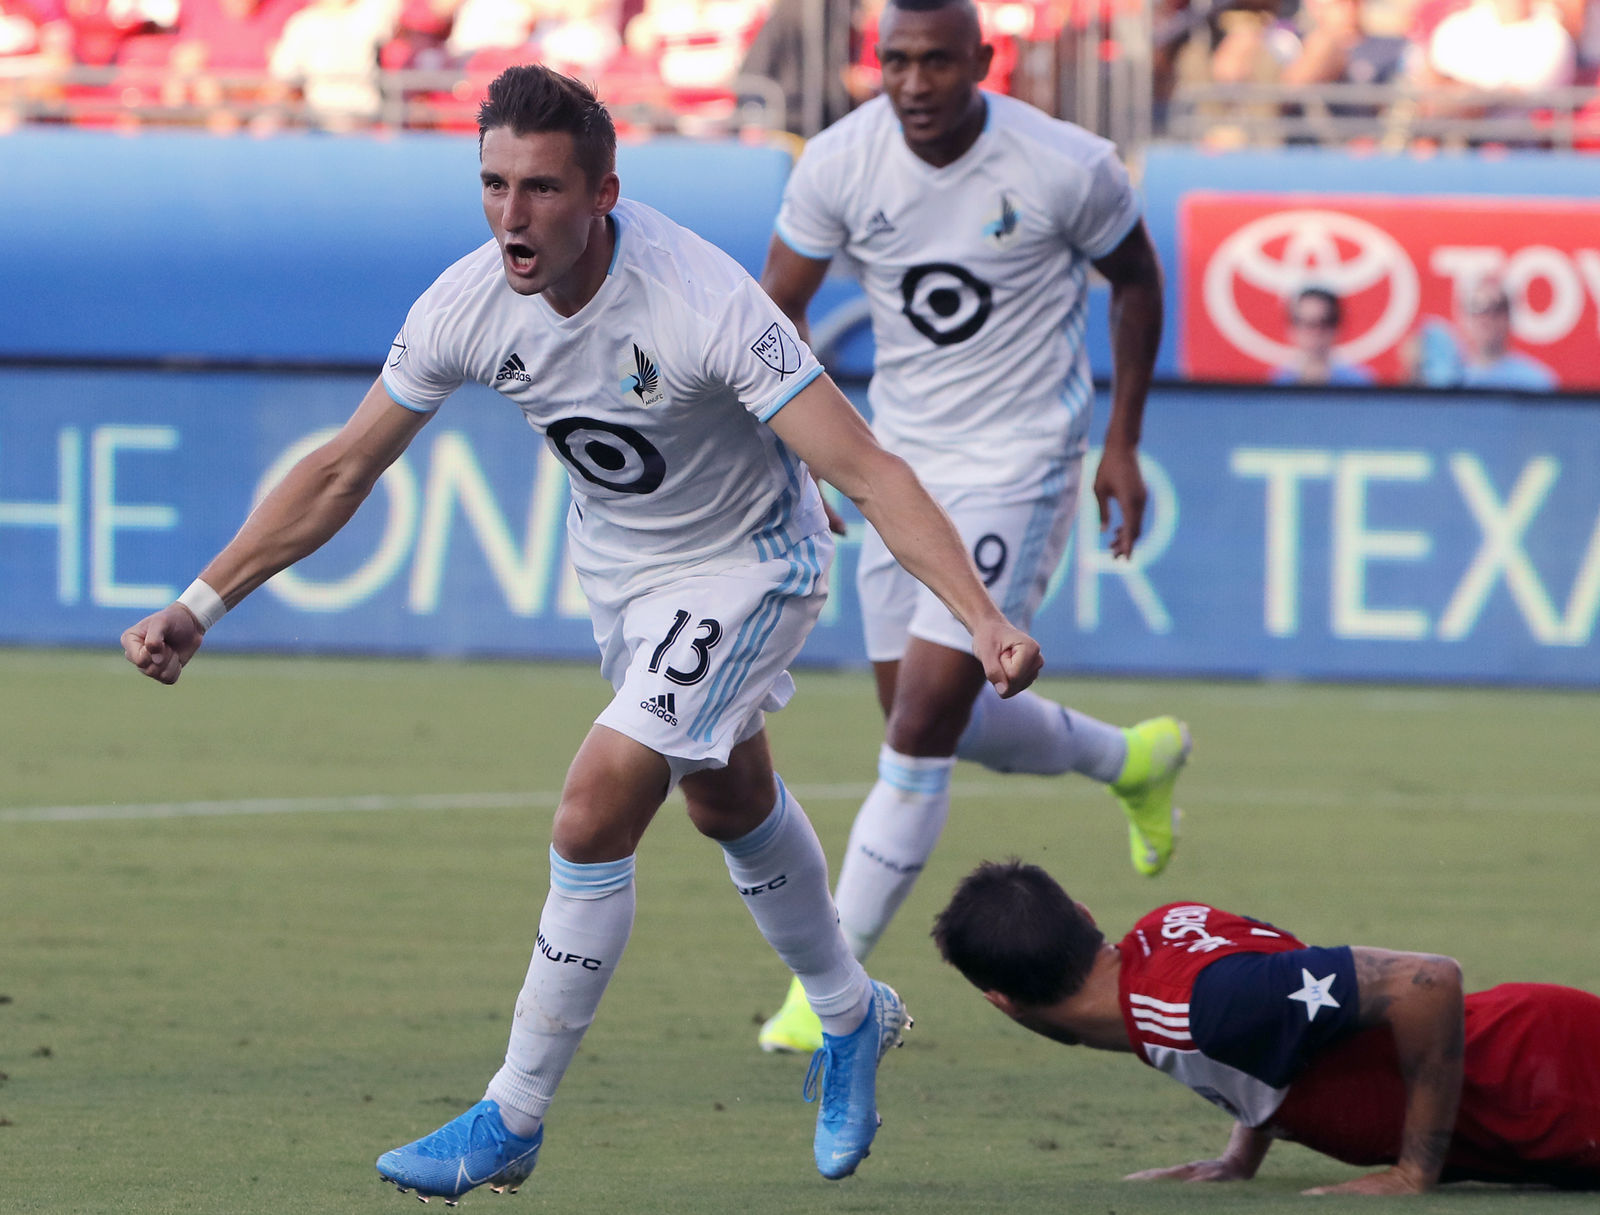 FILE - In this Aug. 10, 2019, file photo, Minnesota United's Ethan Finlay (13) and Angelo Rodriguez, rear left, celebrate Finlay's goal against FC Dallas in the first half of an MLS soccer match in Frisco, Texas. (AP Photo/Tony Gutierrez, File)